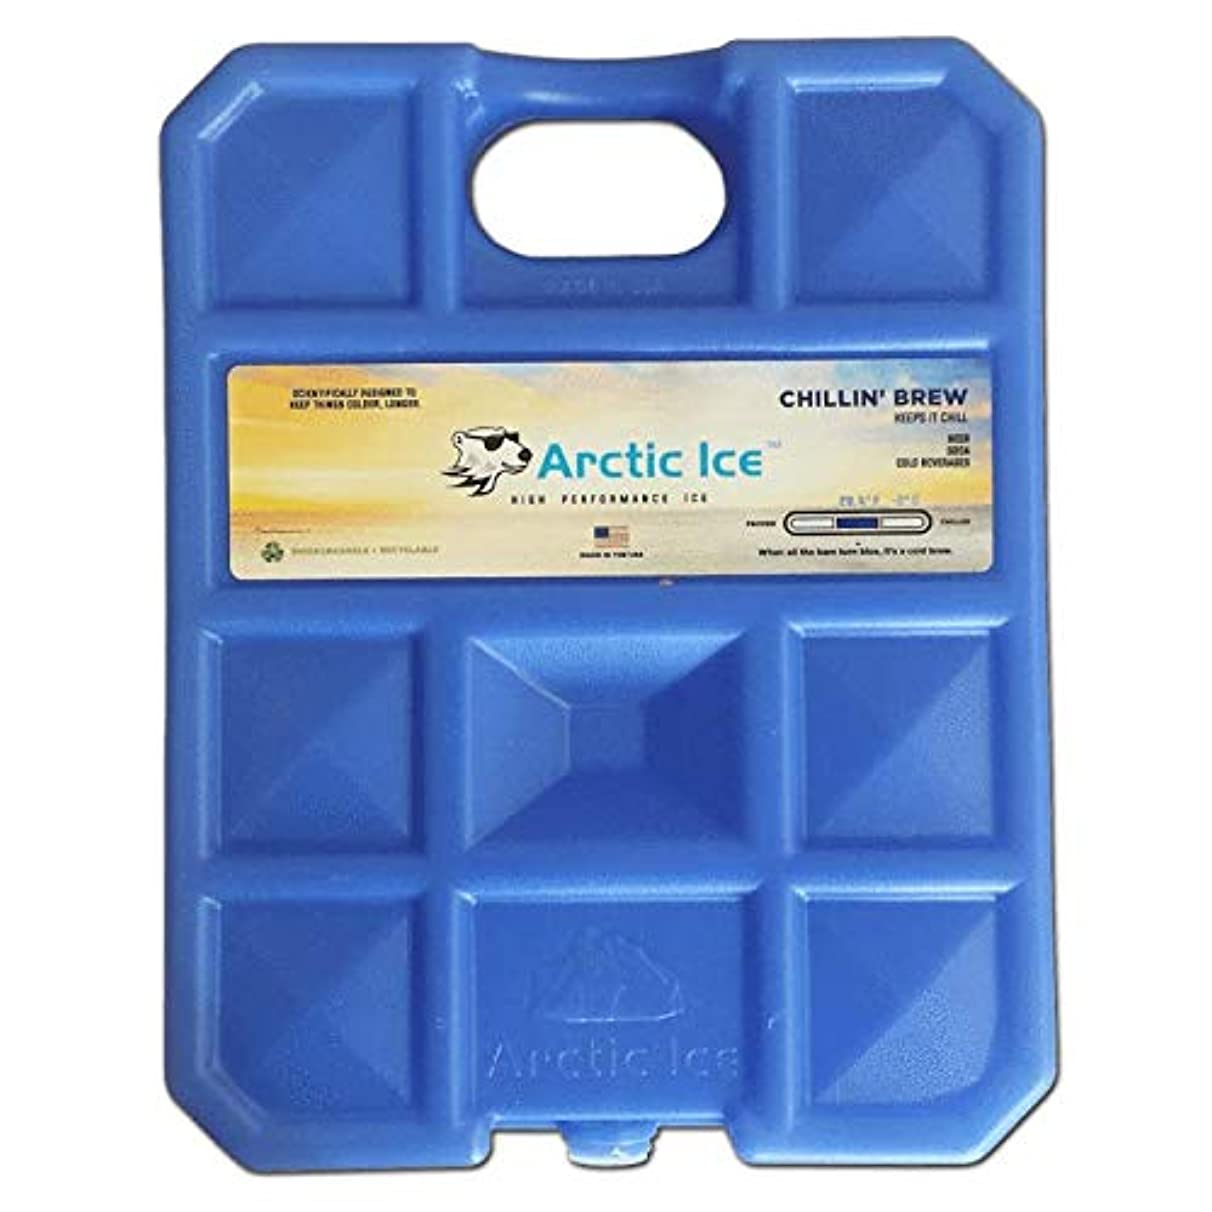 BISON COOLERS Reusable Cold Arctic Ice Packs | Slim & Long Lasting Freezer Pack for Lunch or Beverage Bags and Cooler Ice Chests | 100% American Made | 2.5 (Medium) & 5.0 (Large) Pound